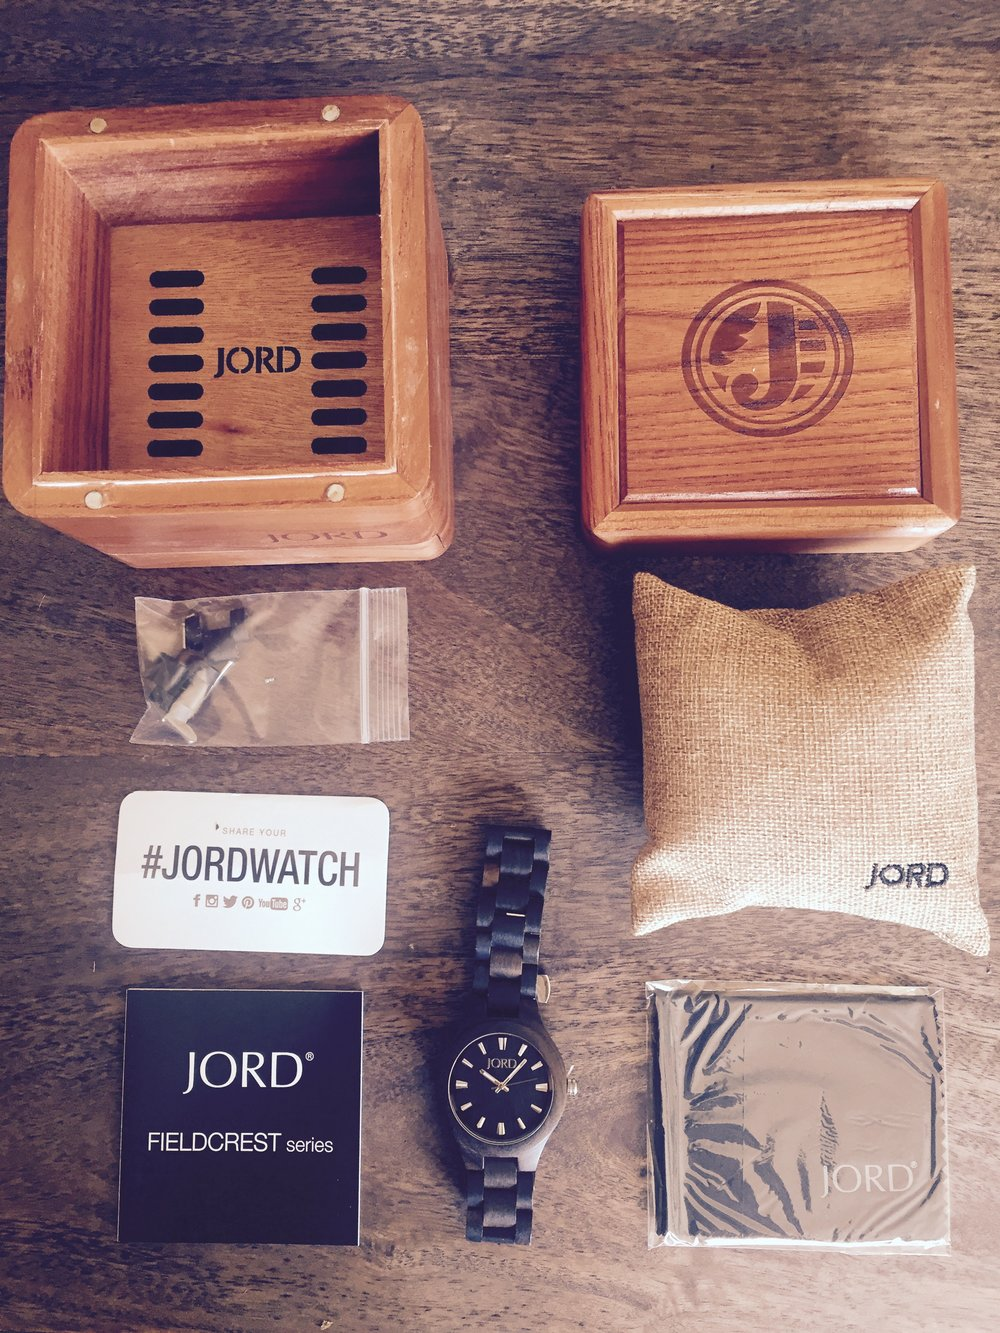 JORD Fieldcrest Dark Sandalwood Series Women's Watch Packaging box watch and tags laid out to see all at once